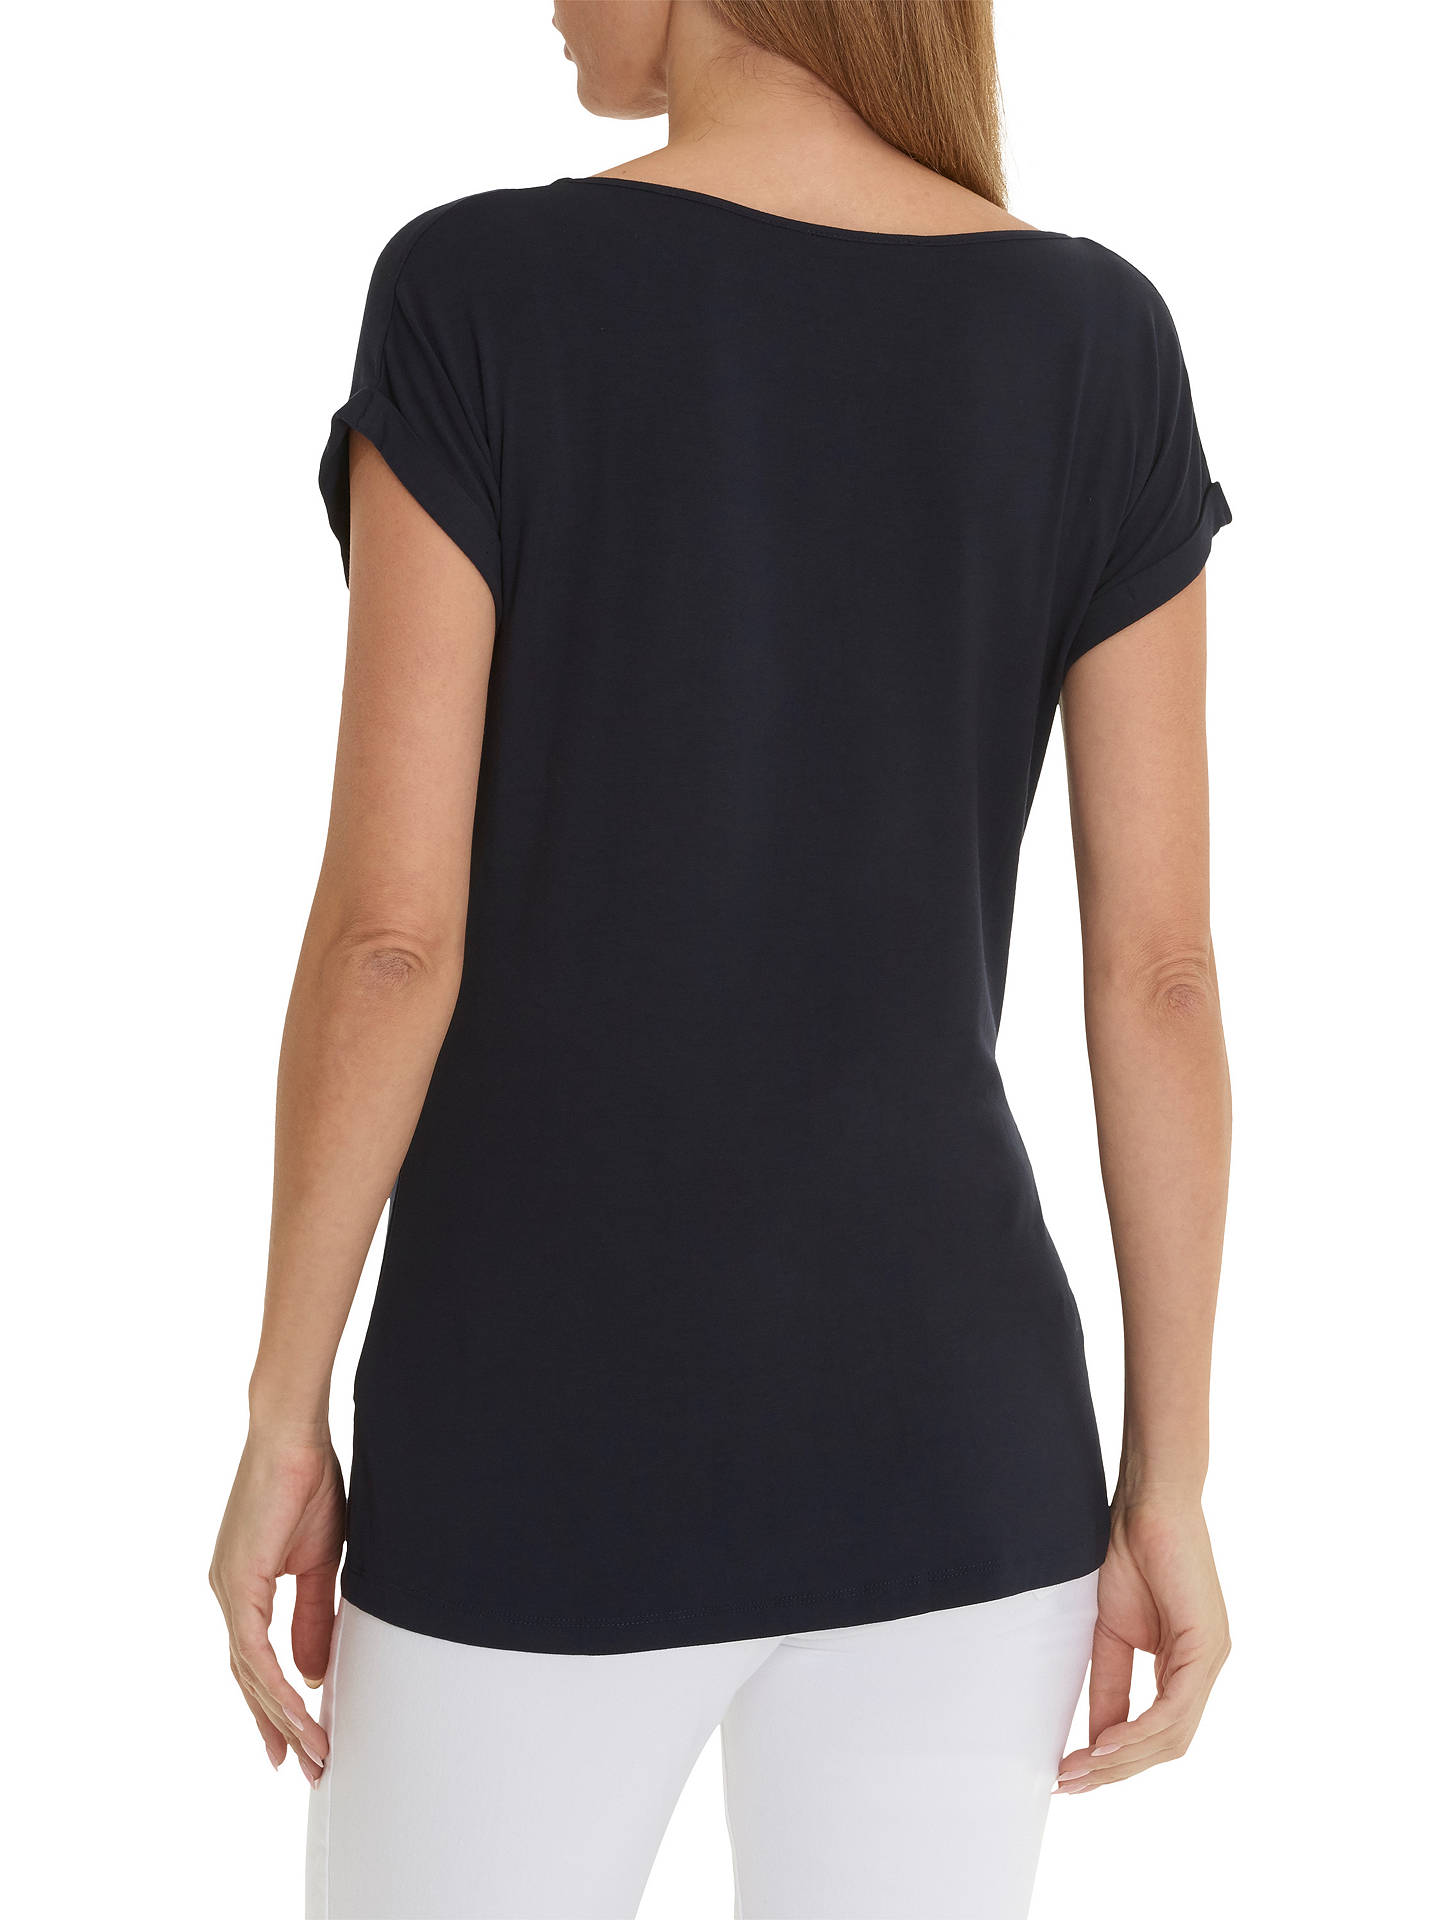 BuyBetty Barclay Cap Sleeve T-Shirt, Dark Sky Blue, 12 Online at johnlewis.com